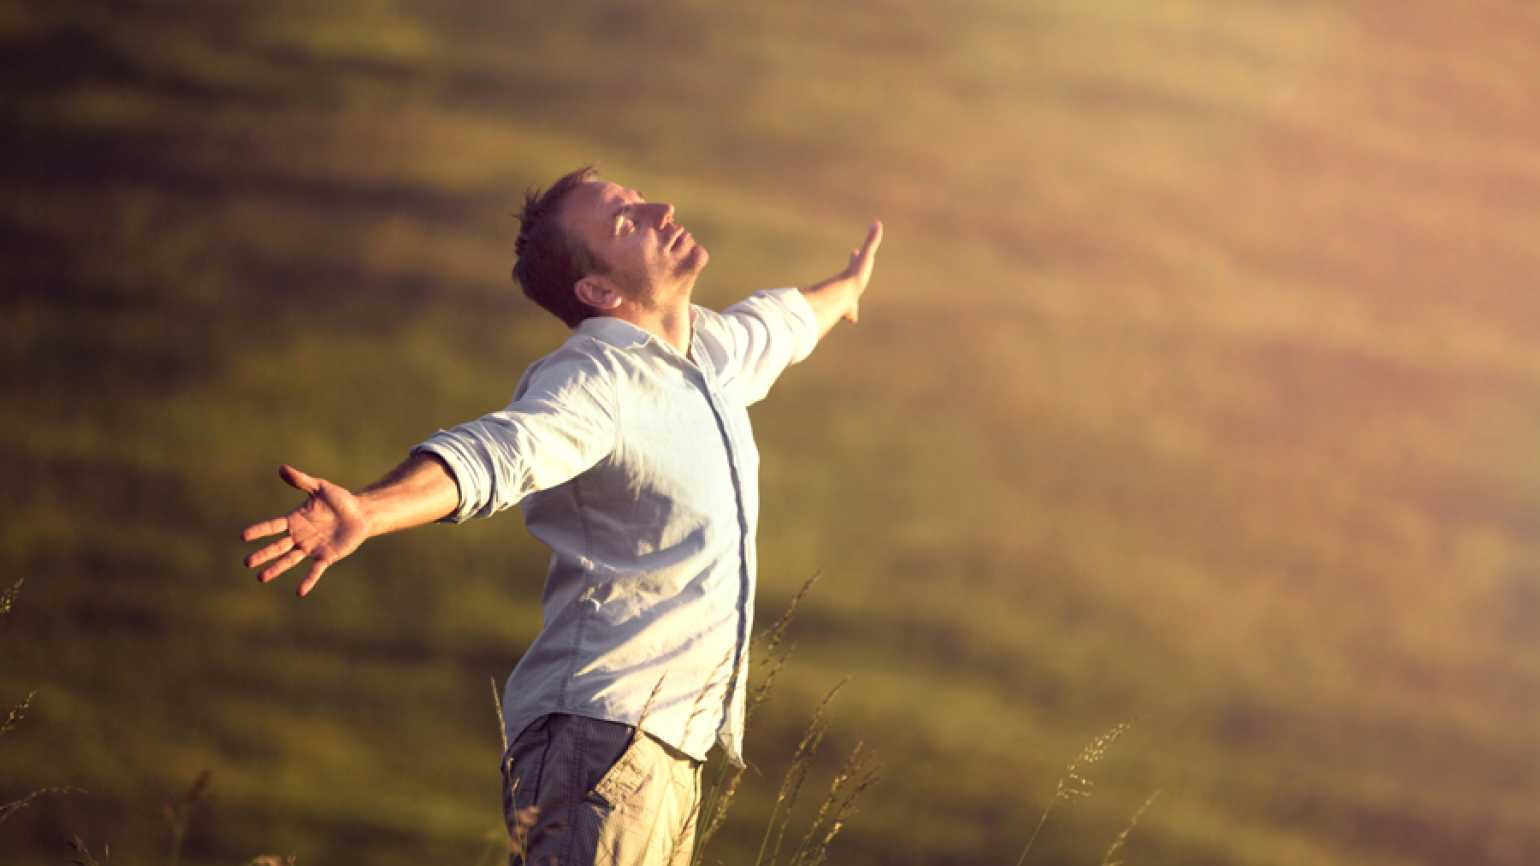 a man looks up to heaven with arms outstretched asking why God